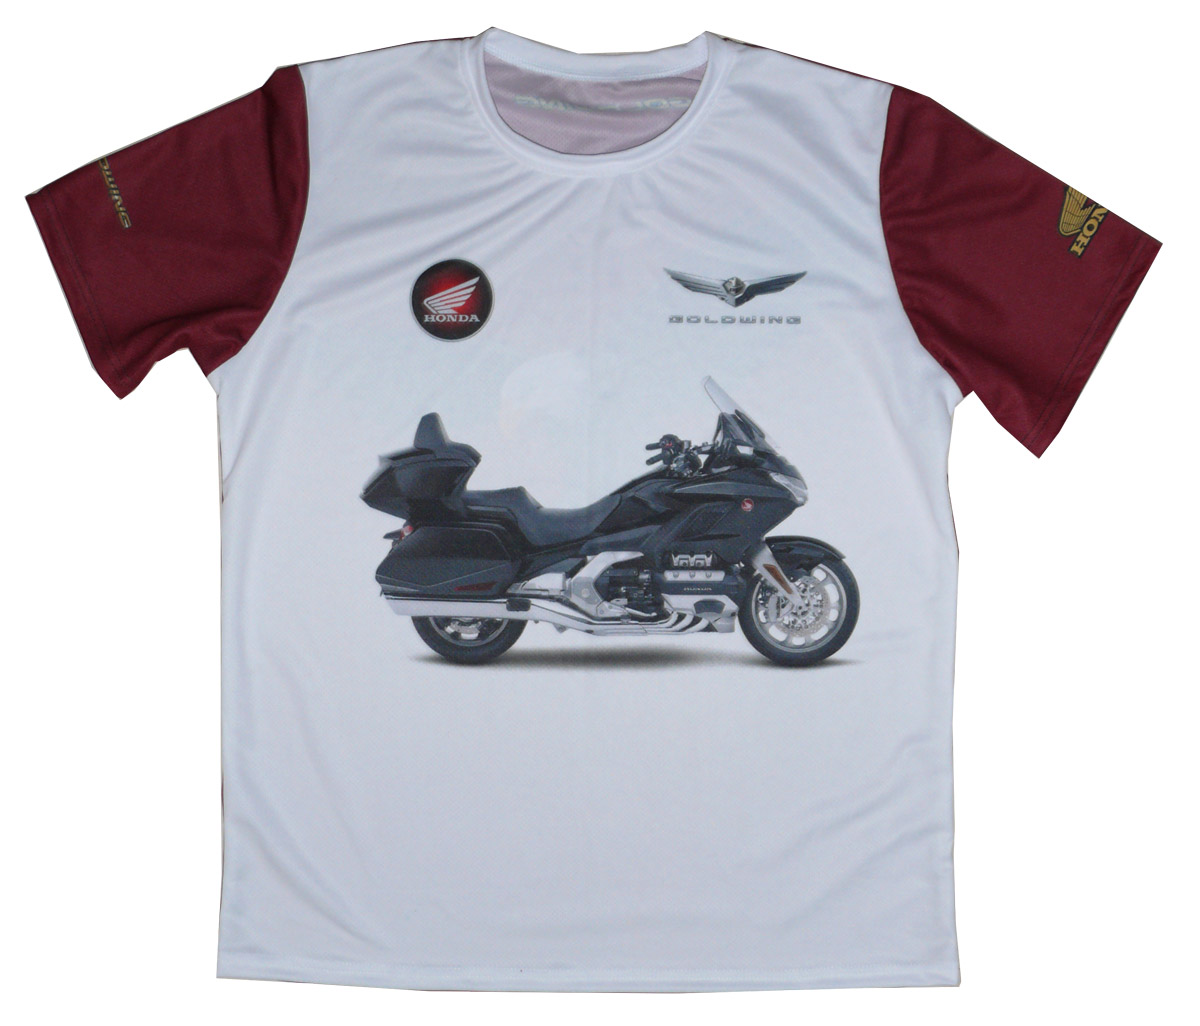 Honda Goldwing GL1800 tourer tee